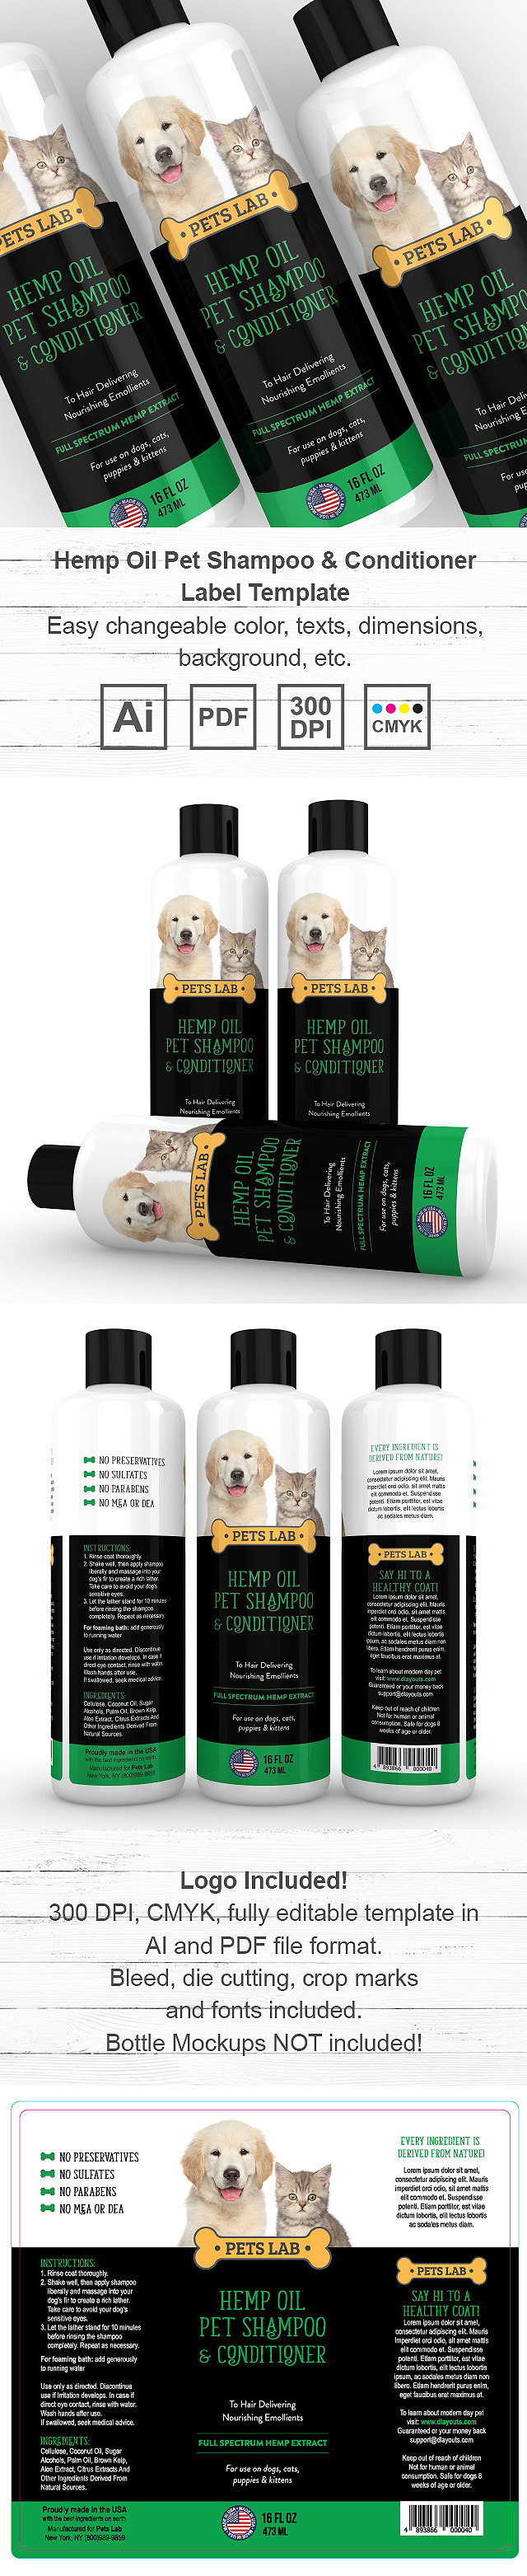 Hemp Oil Pet Shampoo & Conditioner Label Template